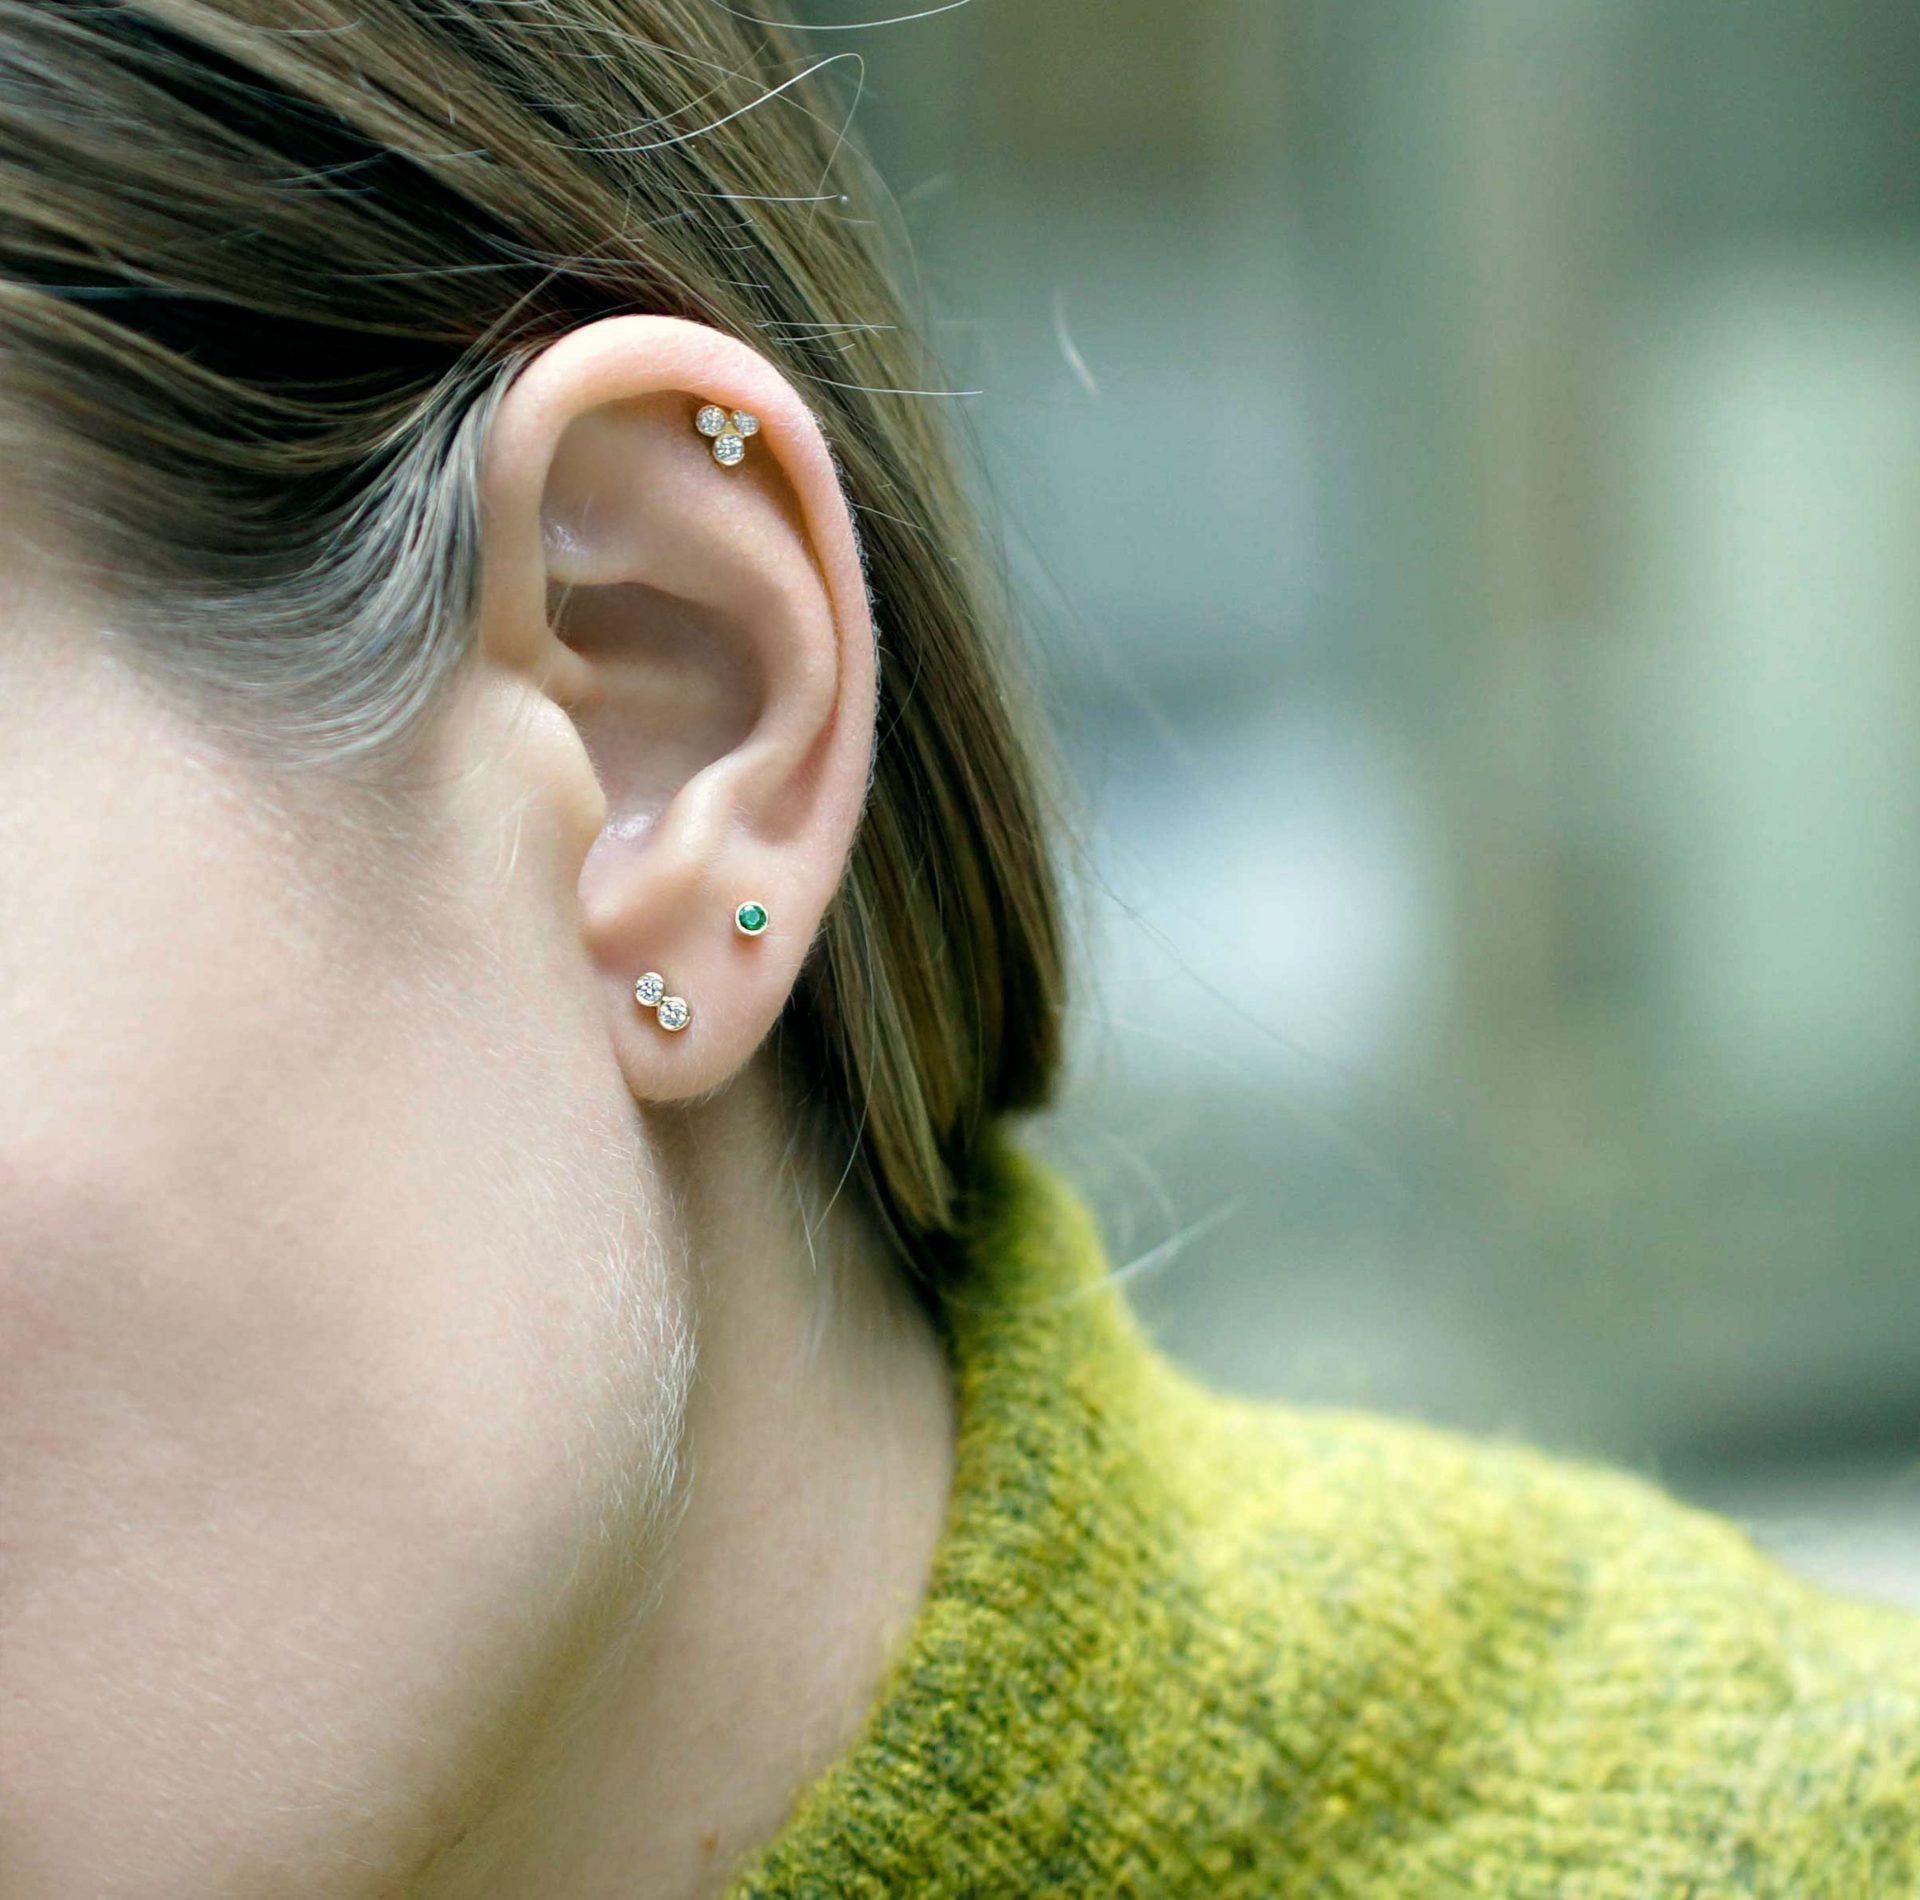 Create-your-own-curated-ear–with-this-versatile-helix-tragus-cartilage–diamond-stud-piercing-earring-lena-cohen-jewellery